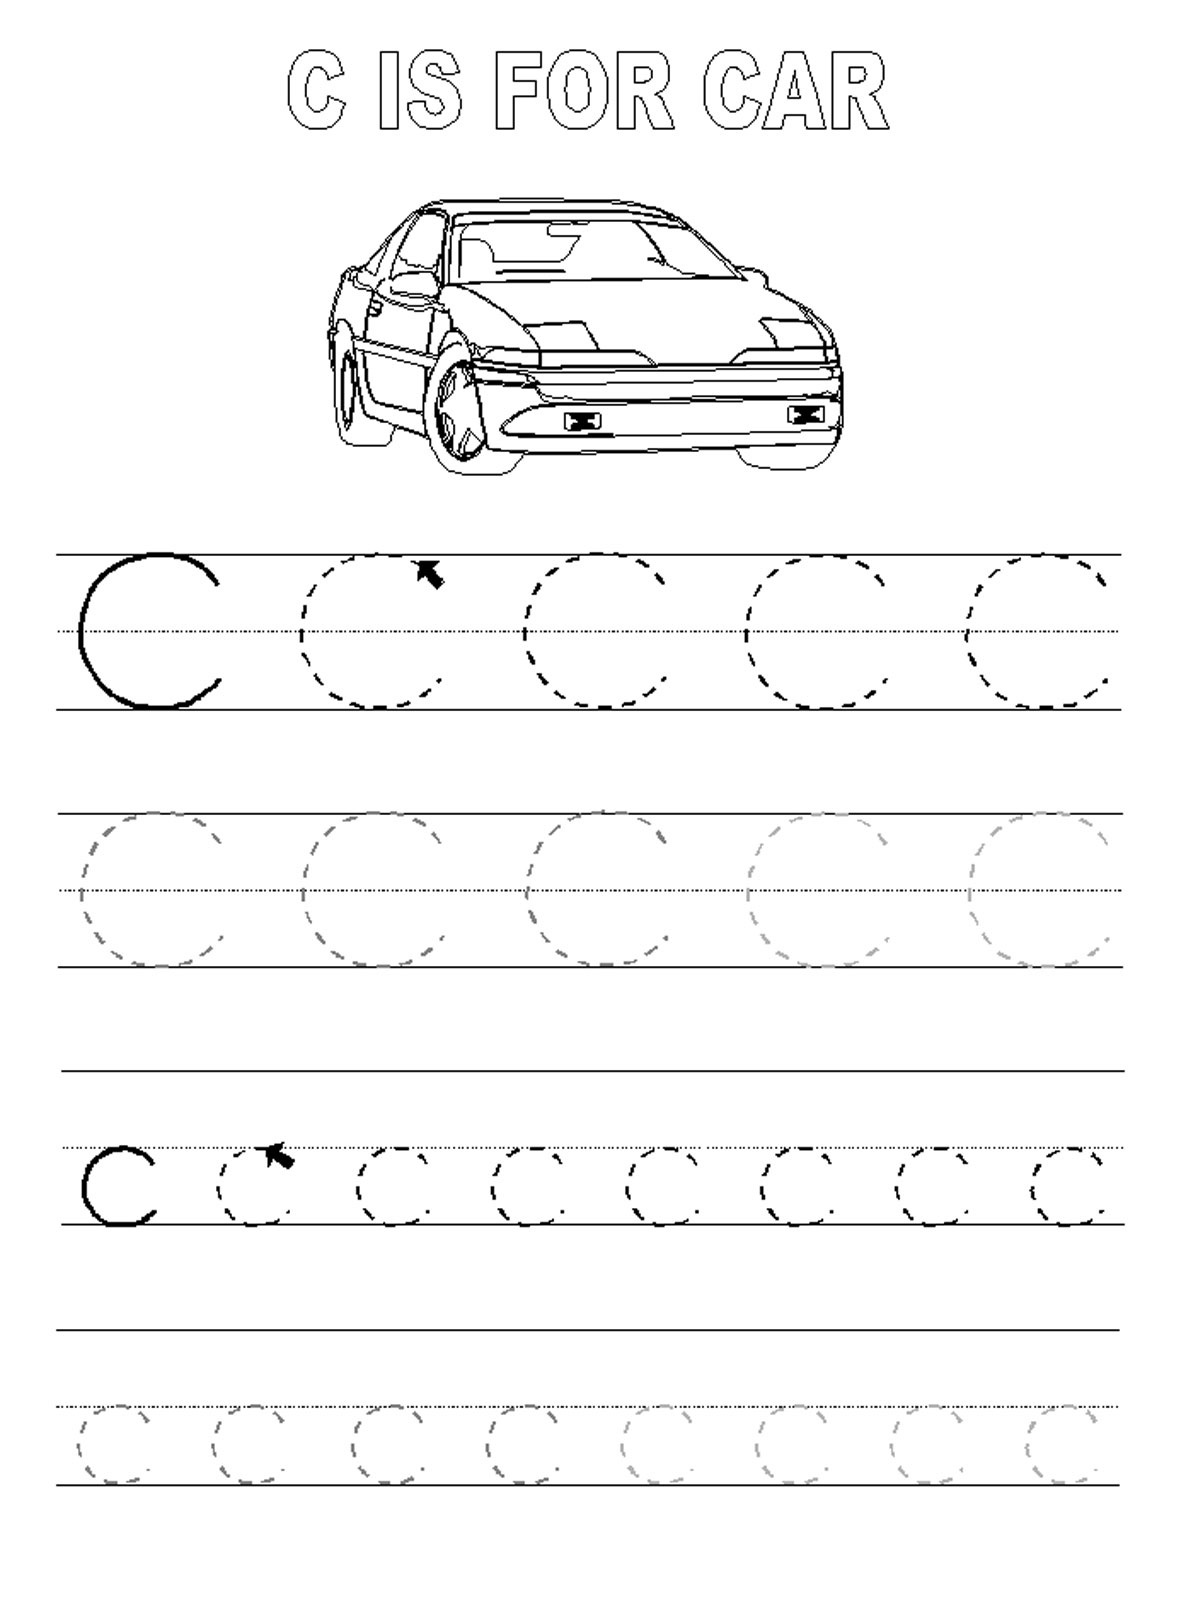 alphabet tracing pages letter C